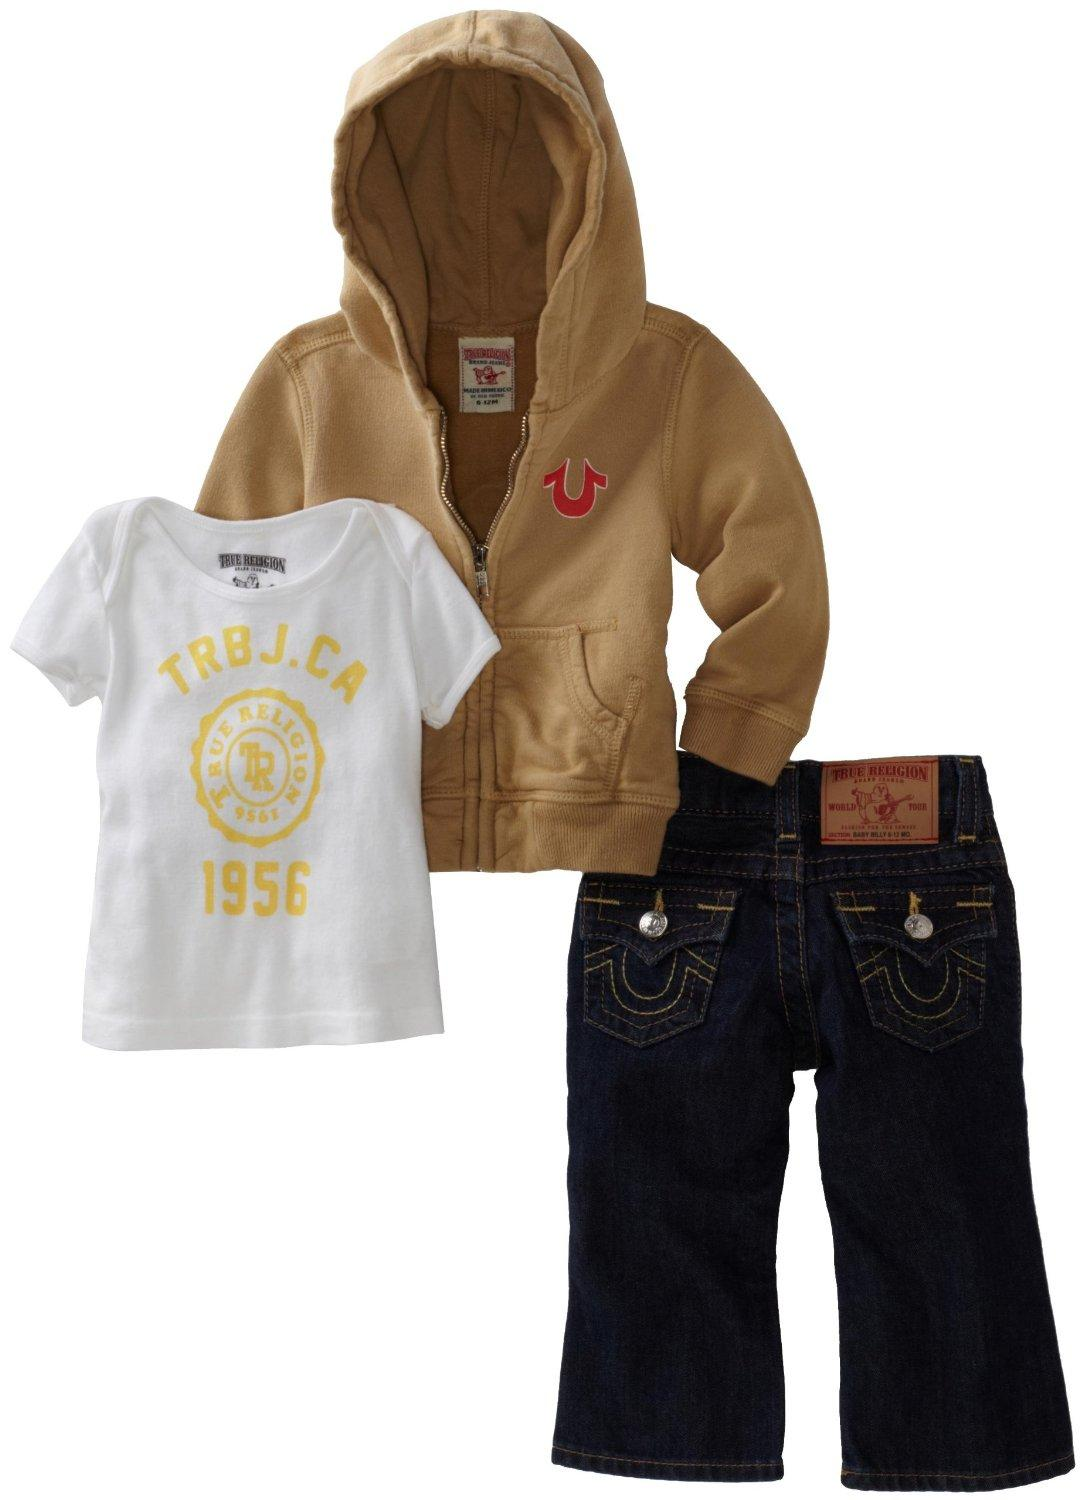 f1f42ba2a Discounted) True Religion Unisex Baby Infant Baby 3 Piece Gift Box Set